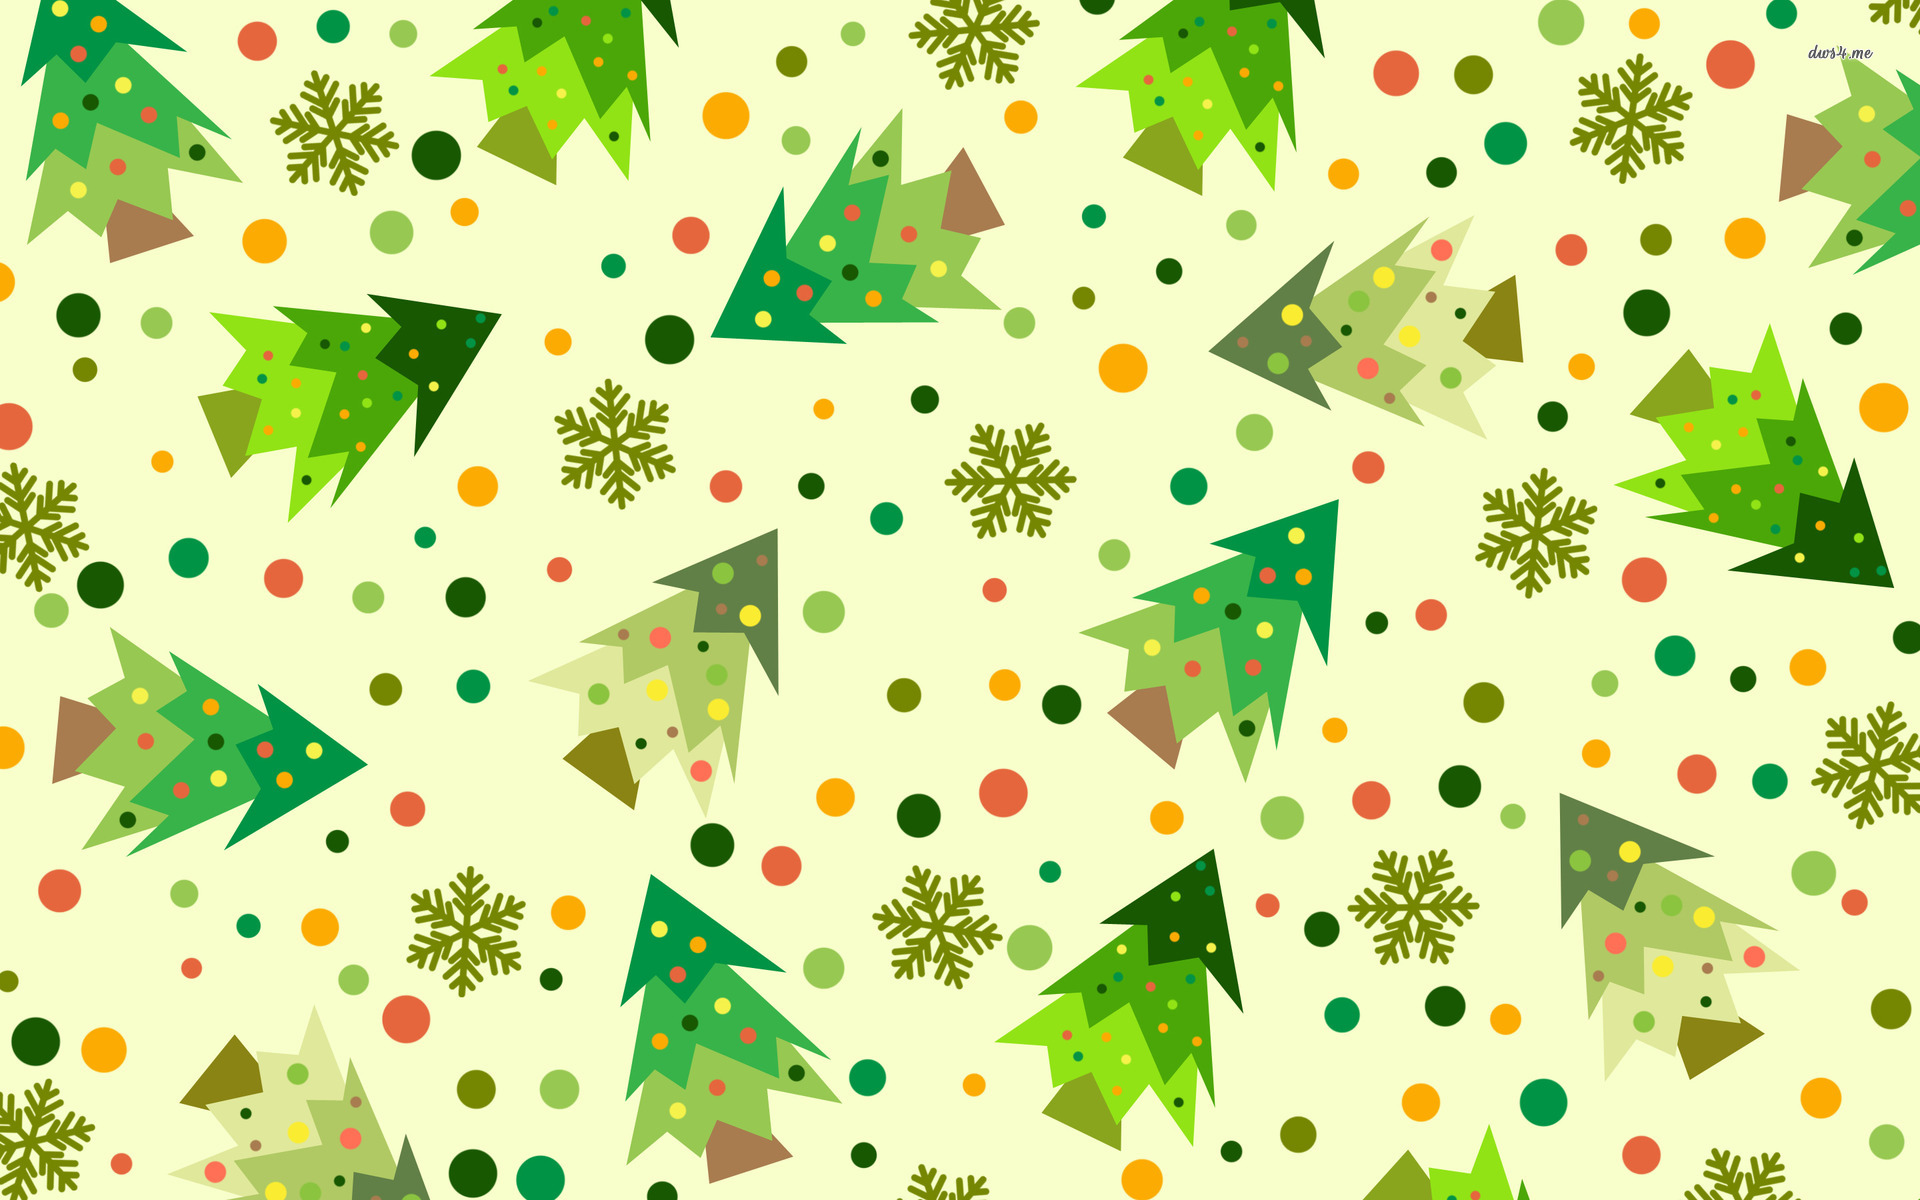 Christmas tree pattern wallpaper   Holiday wallpapers   21132 1920x1200